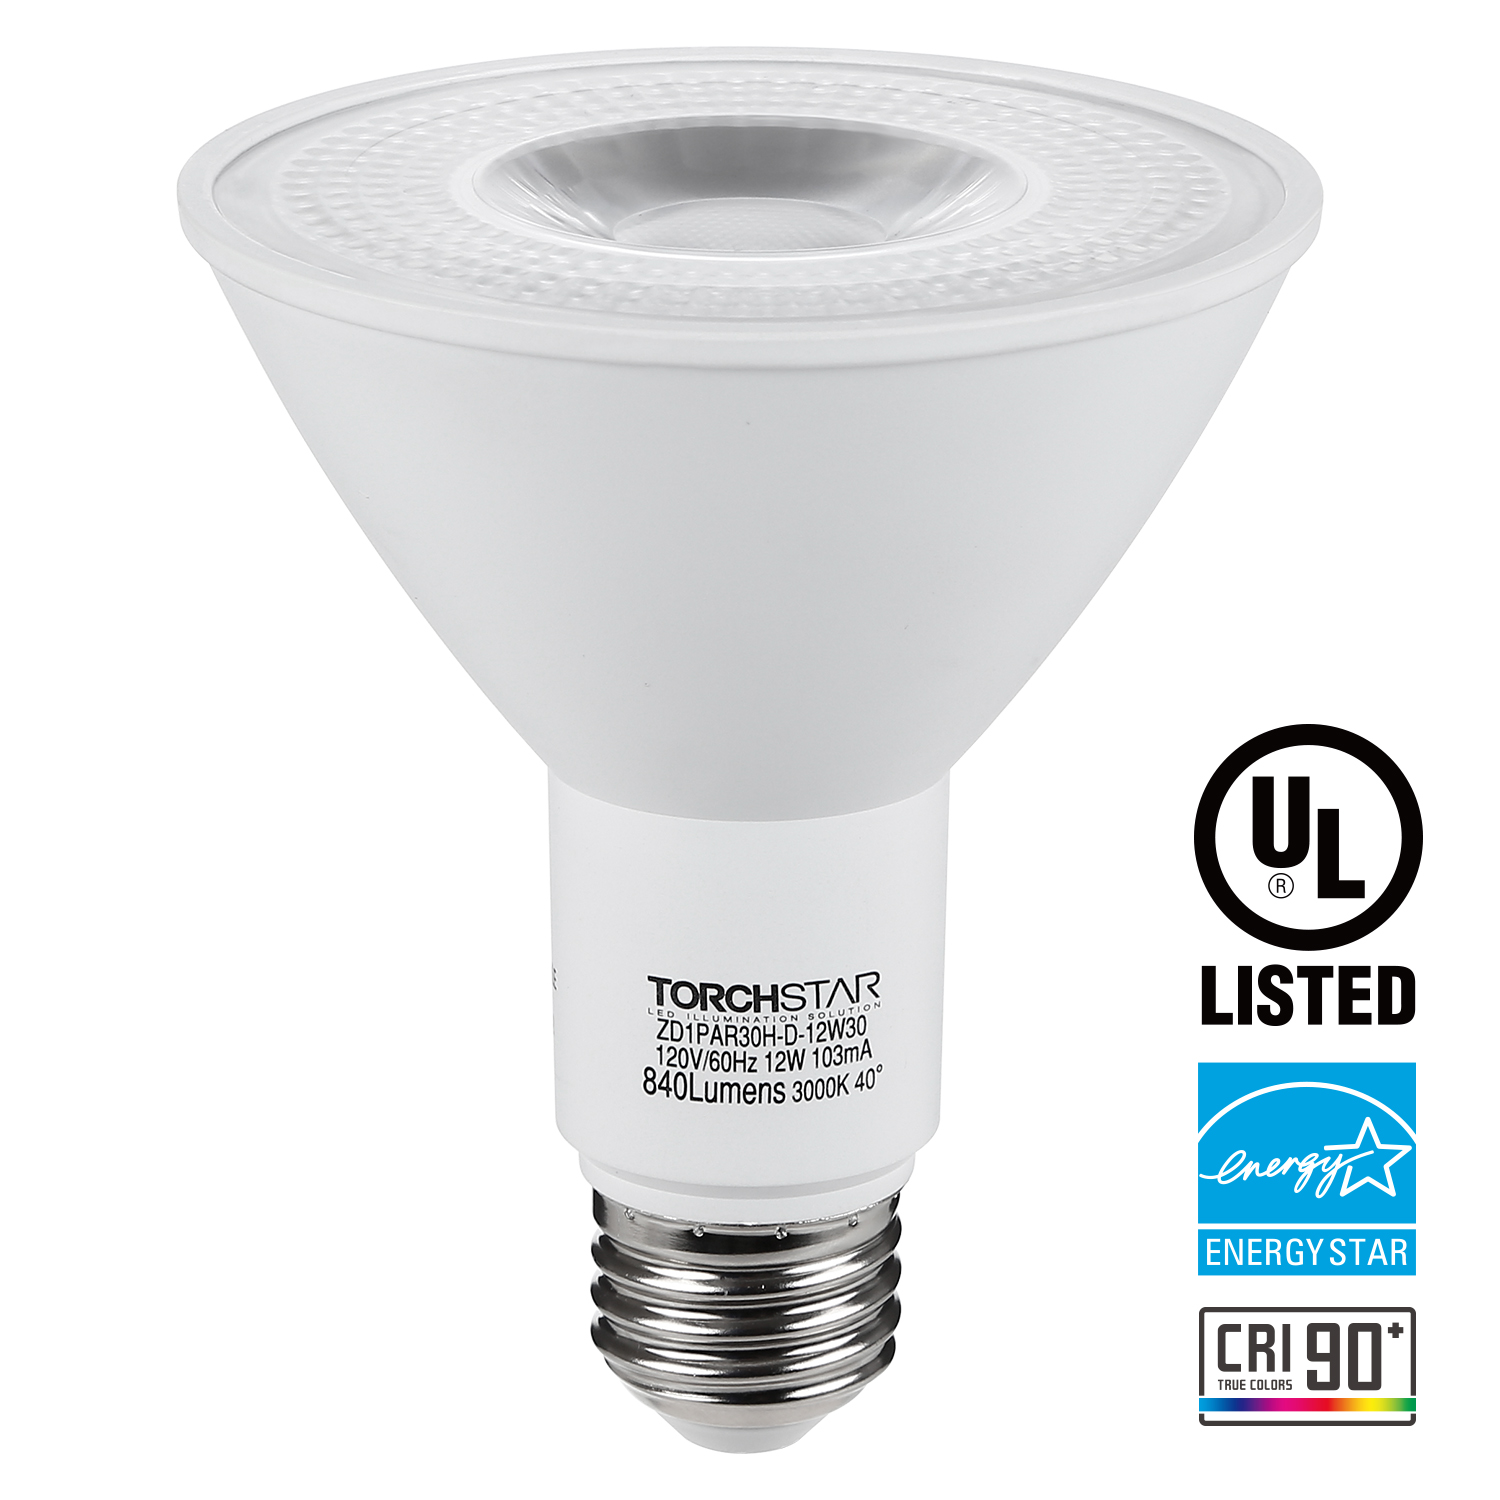 Dimmable 12W LED Flood Light Bulbs, LED PAR30 Light Bulb, Long Neck Spotlight, 3000K Warm White